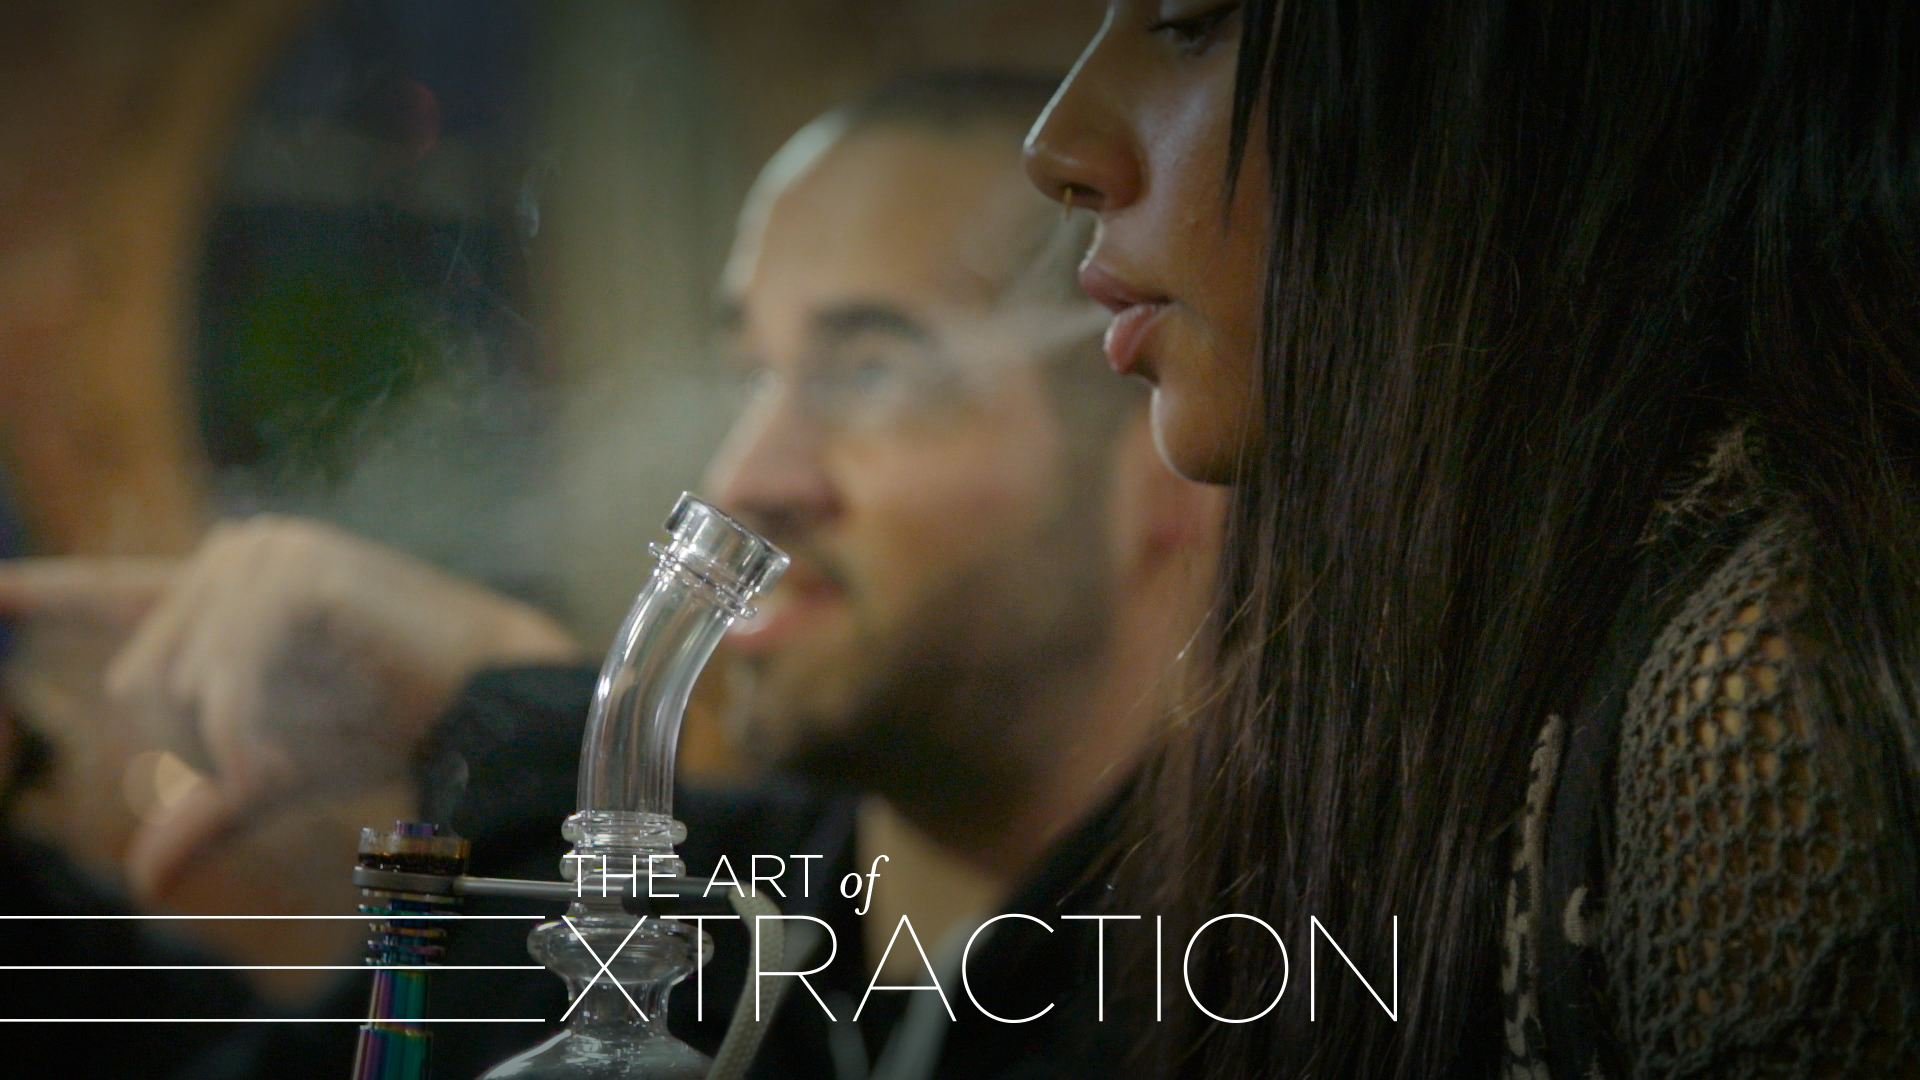 The Art of Cannabis Extraction